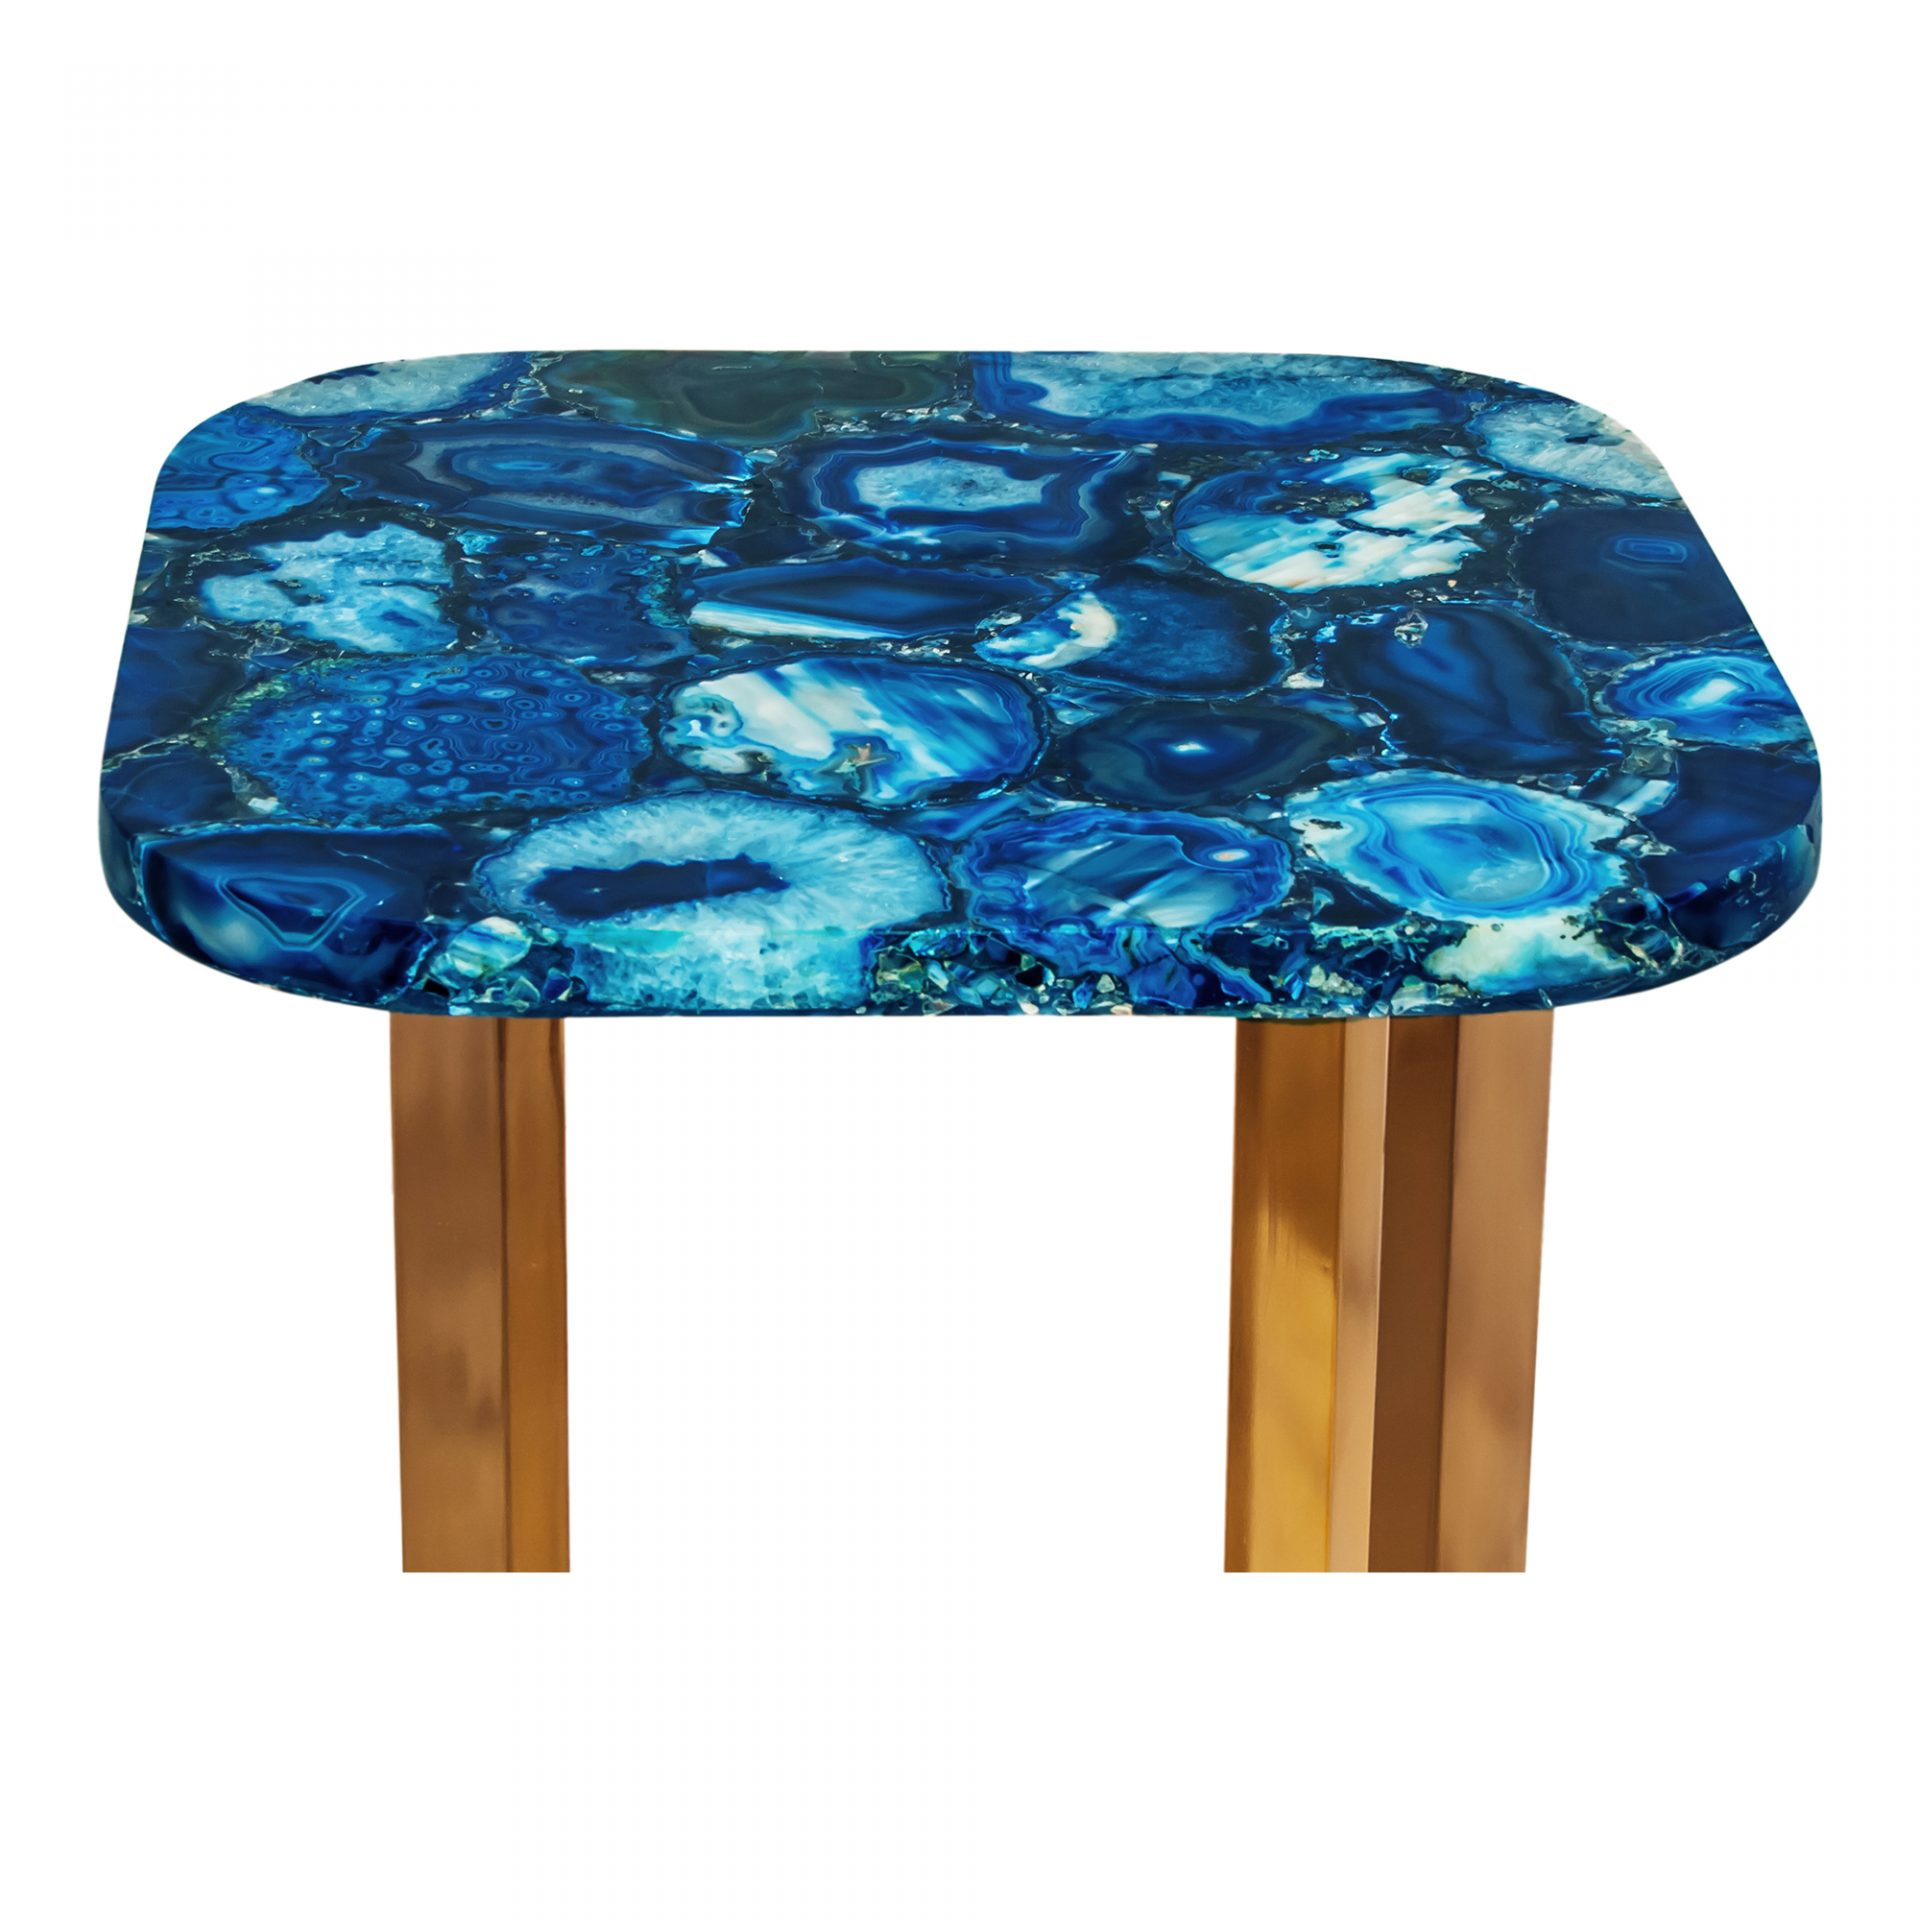 oceanic blue agate accent table products moe whole teal tables american drew furniture hammered metal coffee small antique marble top piece patio dining set counter height chairs